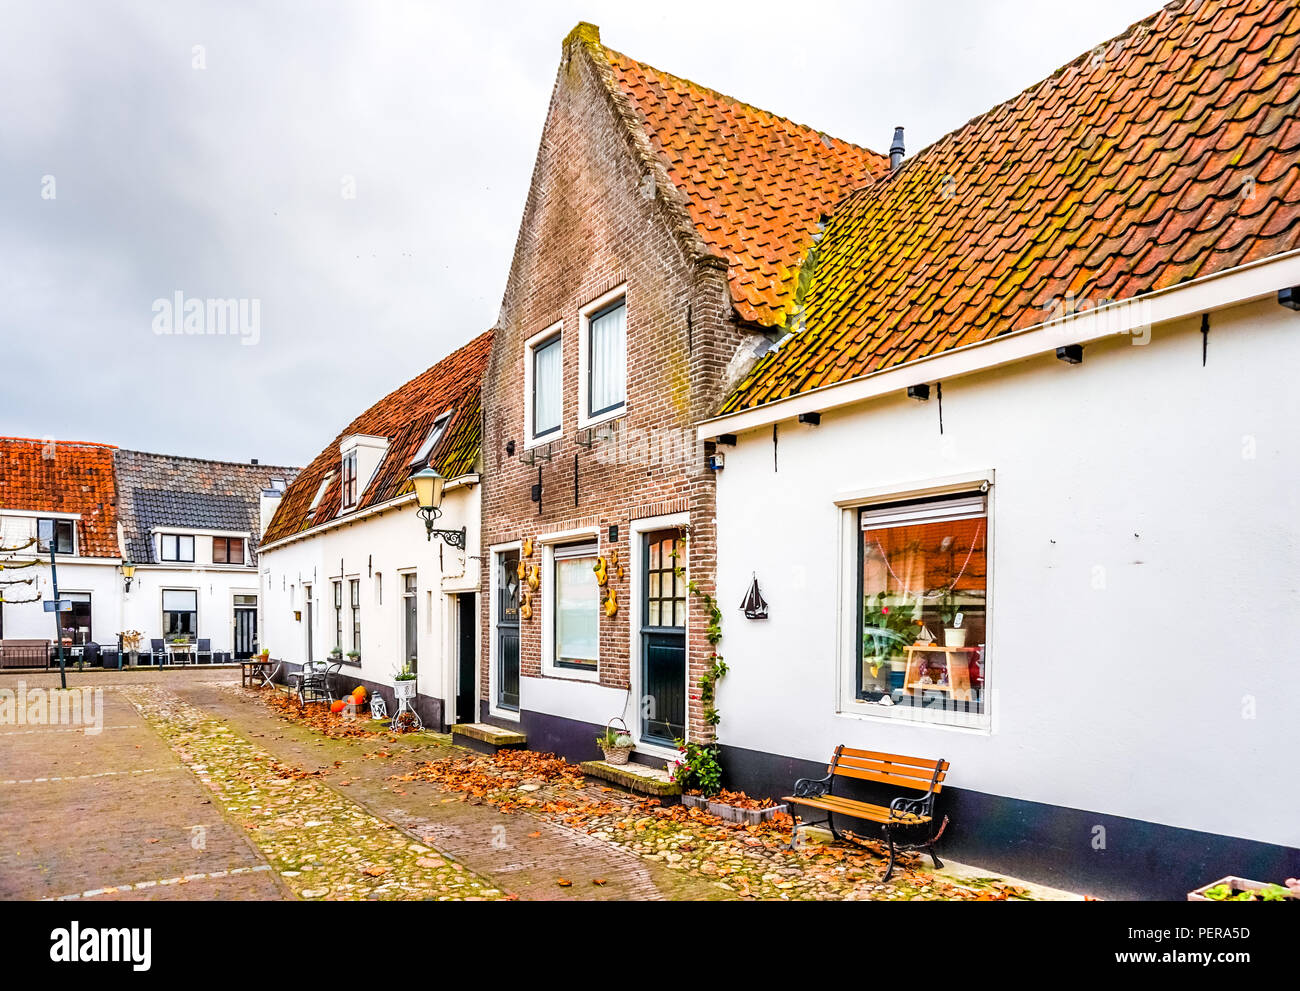 Historic Brick Houses in 14th century old Dutch fishing village of Elburg - Stock Image